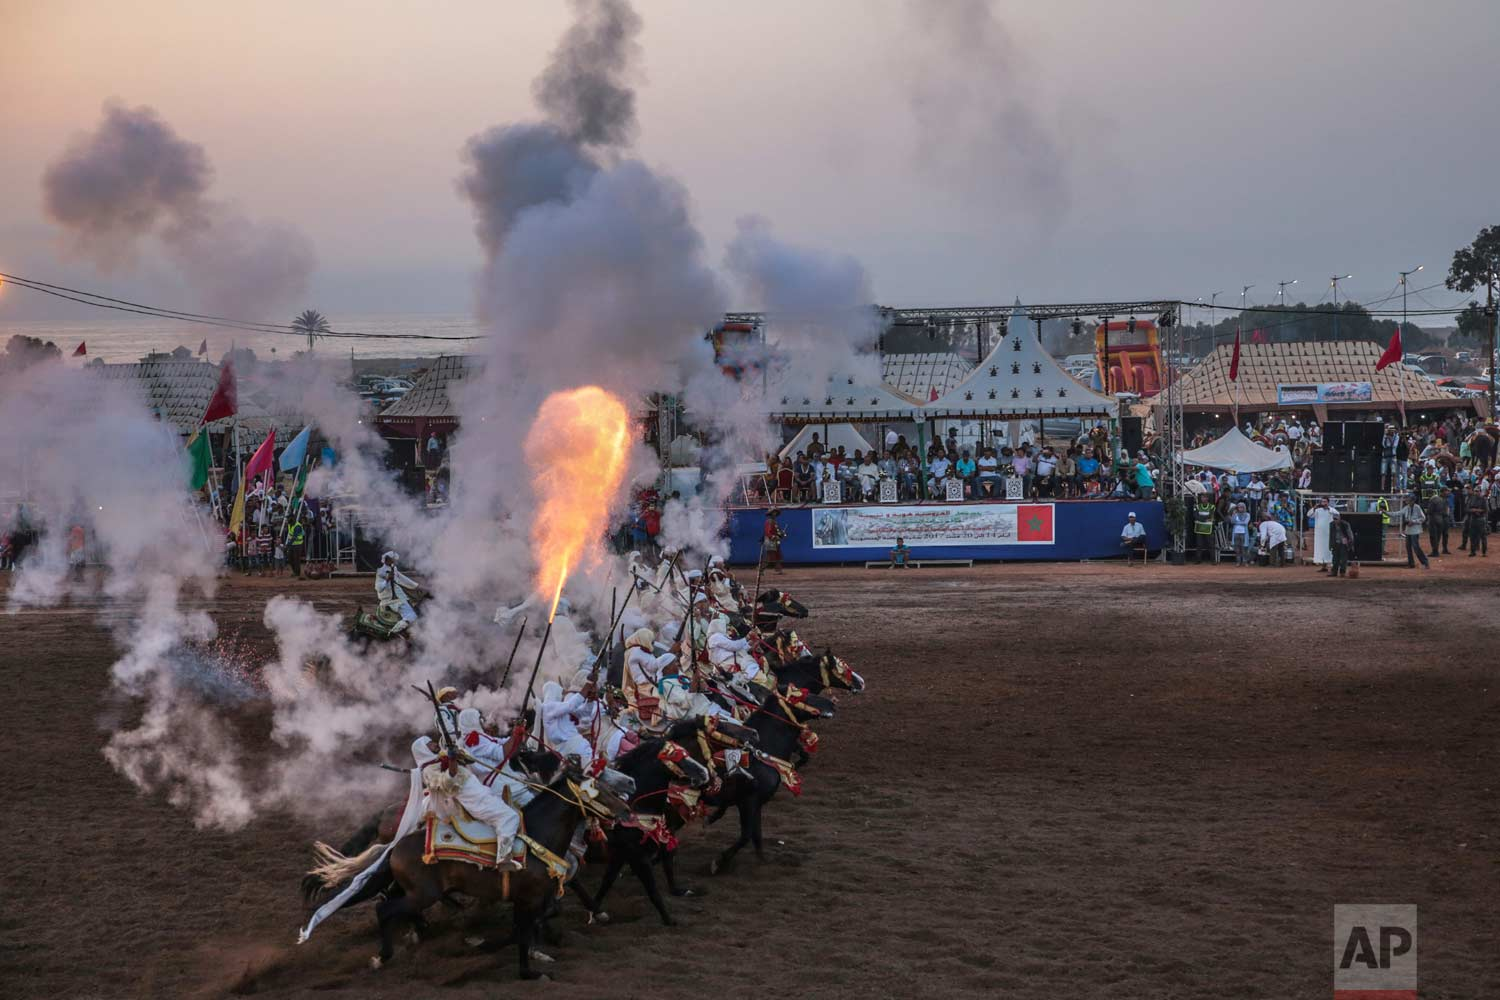 In this Thursday, Aug. 17, 2017 photo, a troupe charges and fires their rifles during Tabourida, a traditional horse riding show also known as Fantasia, in Mansouria, near Casablanca, Morocco. (AP Photo/Mosa'ab Elshamy)